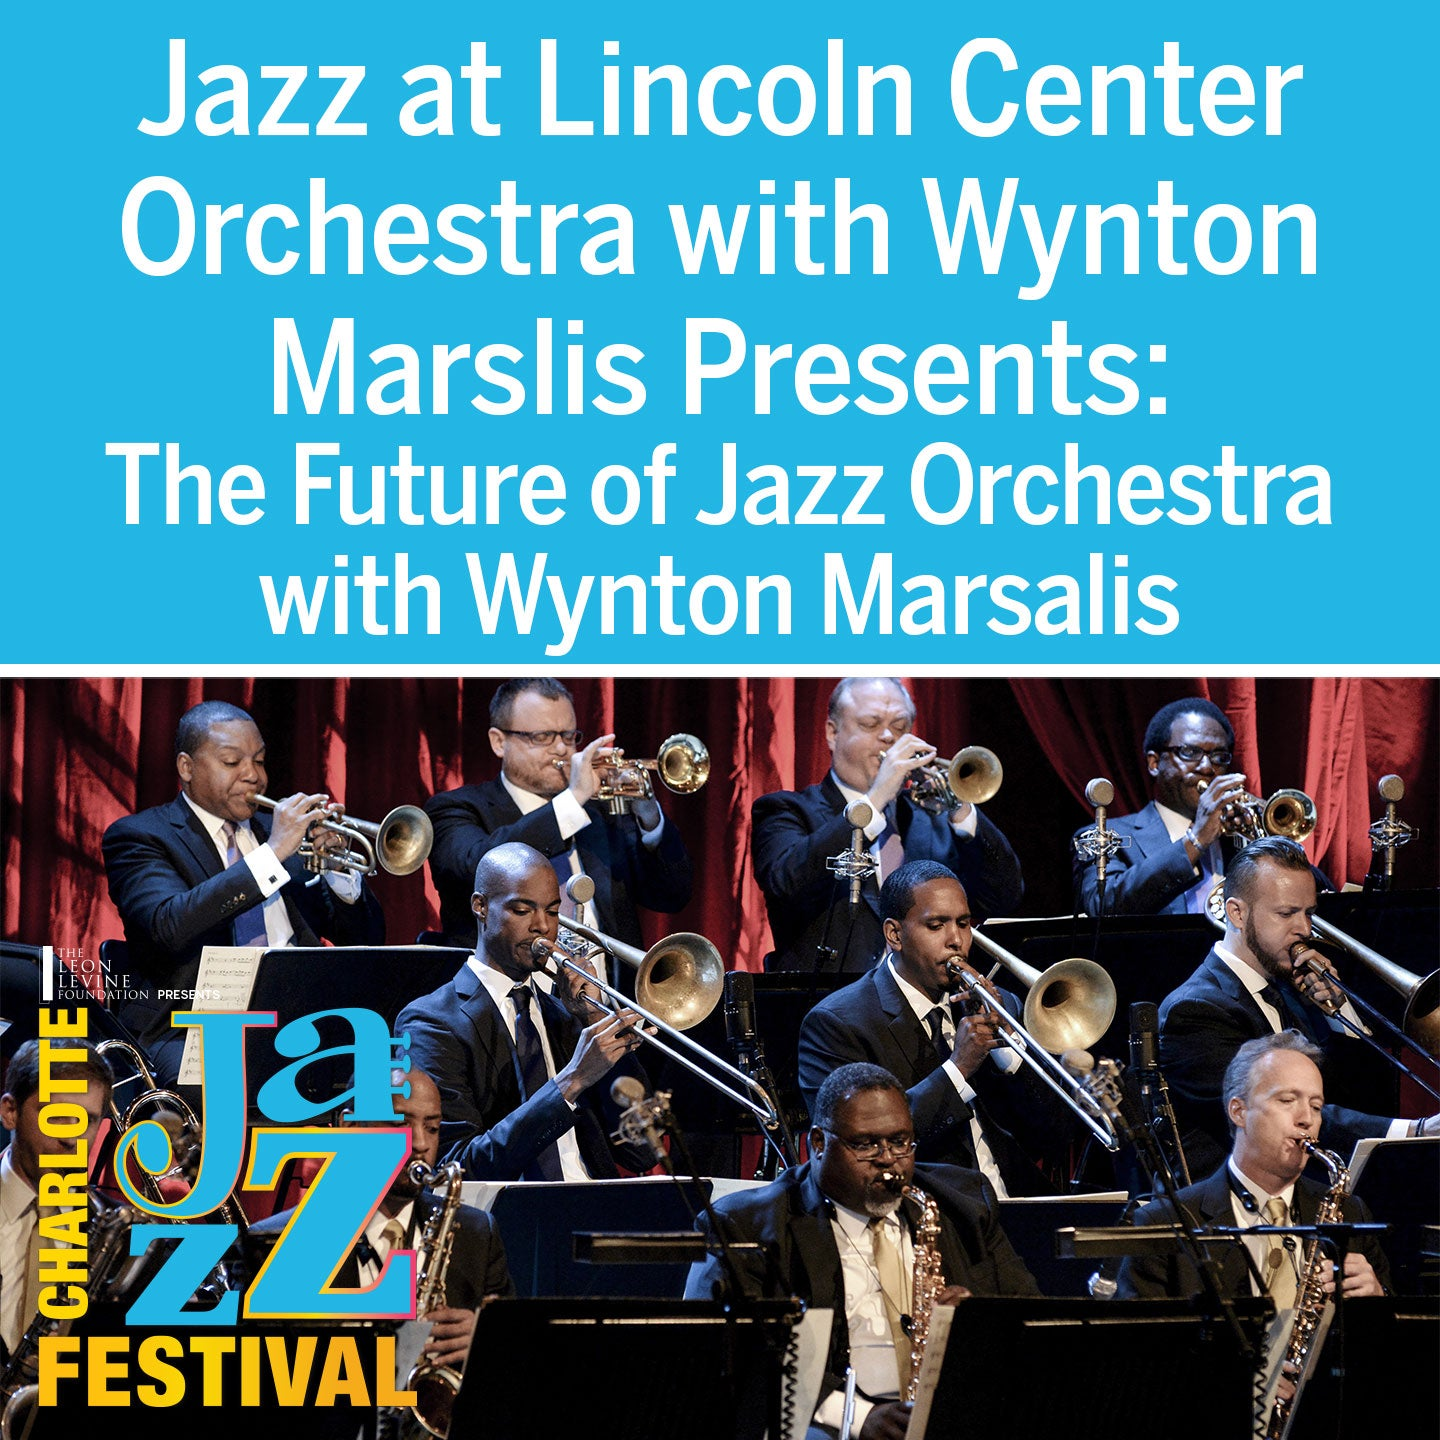 The Future of Jazz Orchestra with Wynton Marsalis: Ellington Through the Ages